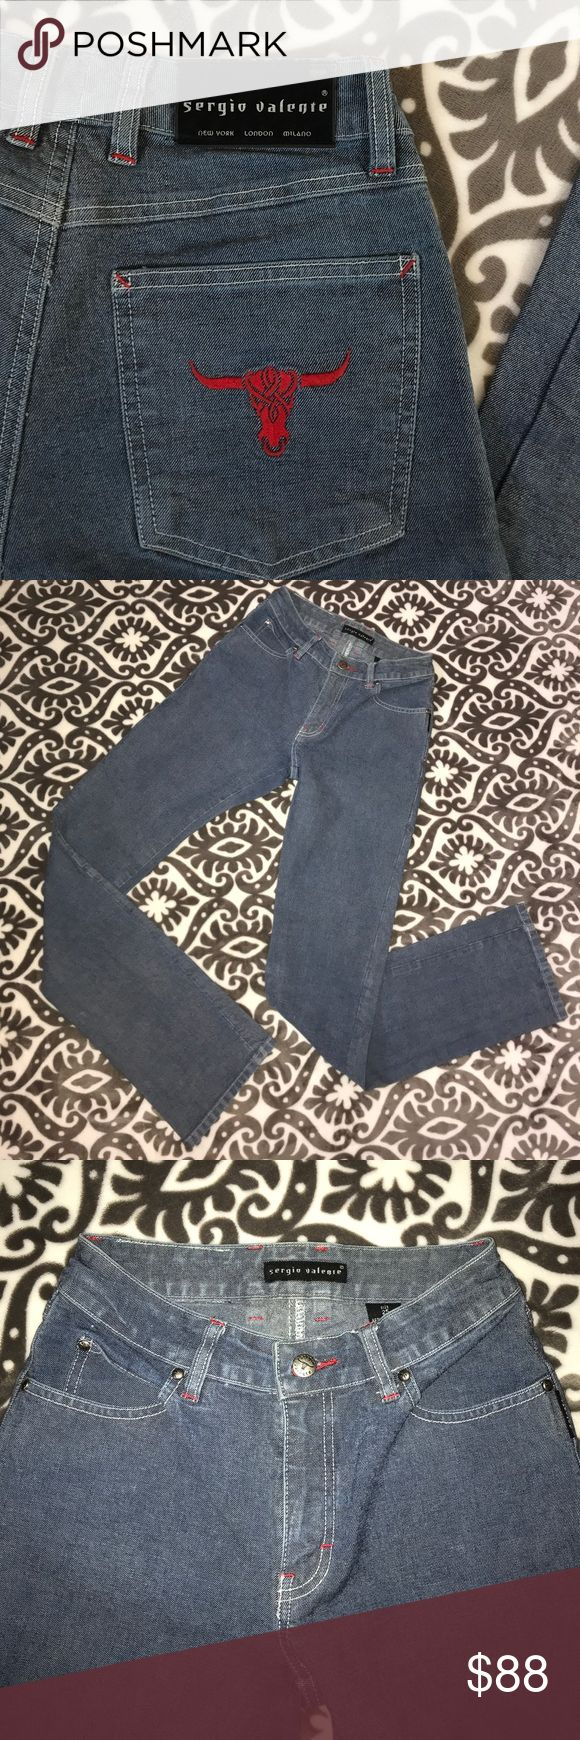 VINTAGE SERGIO VALENTE JEANS 🚨 Ultra Rare Retro Vintage 🚨 Sergio Valente Light Wash Straight Leg / Slight Boot Cut Jeans with red accent stitching & signature Bull on right back pocket as well as double stripe detailing on inside ankle for extra style when cuffed SIZE 25 (XS-S / 0-2) INSEAM: 34 inches (brand runs long to allow for customized length) 96% COTTON 4% LYCRA SPANDEX Gives a little stretch Sergio Valente Jeans